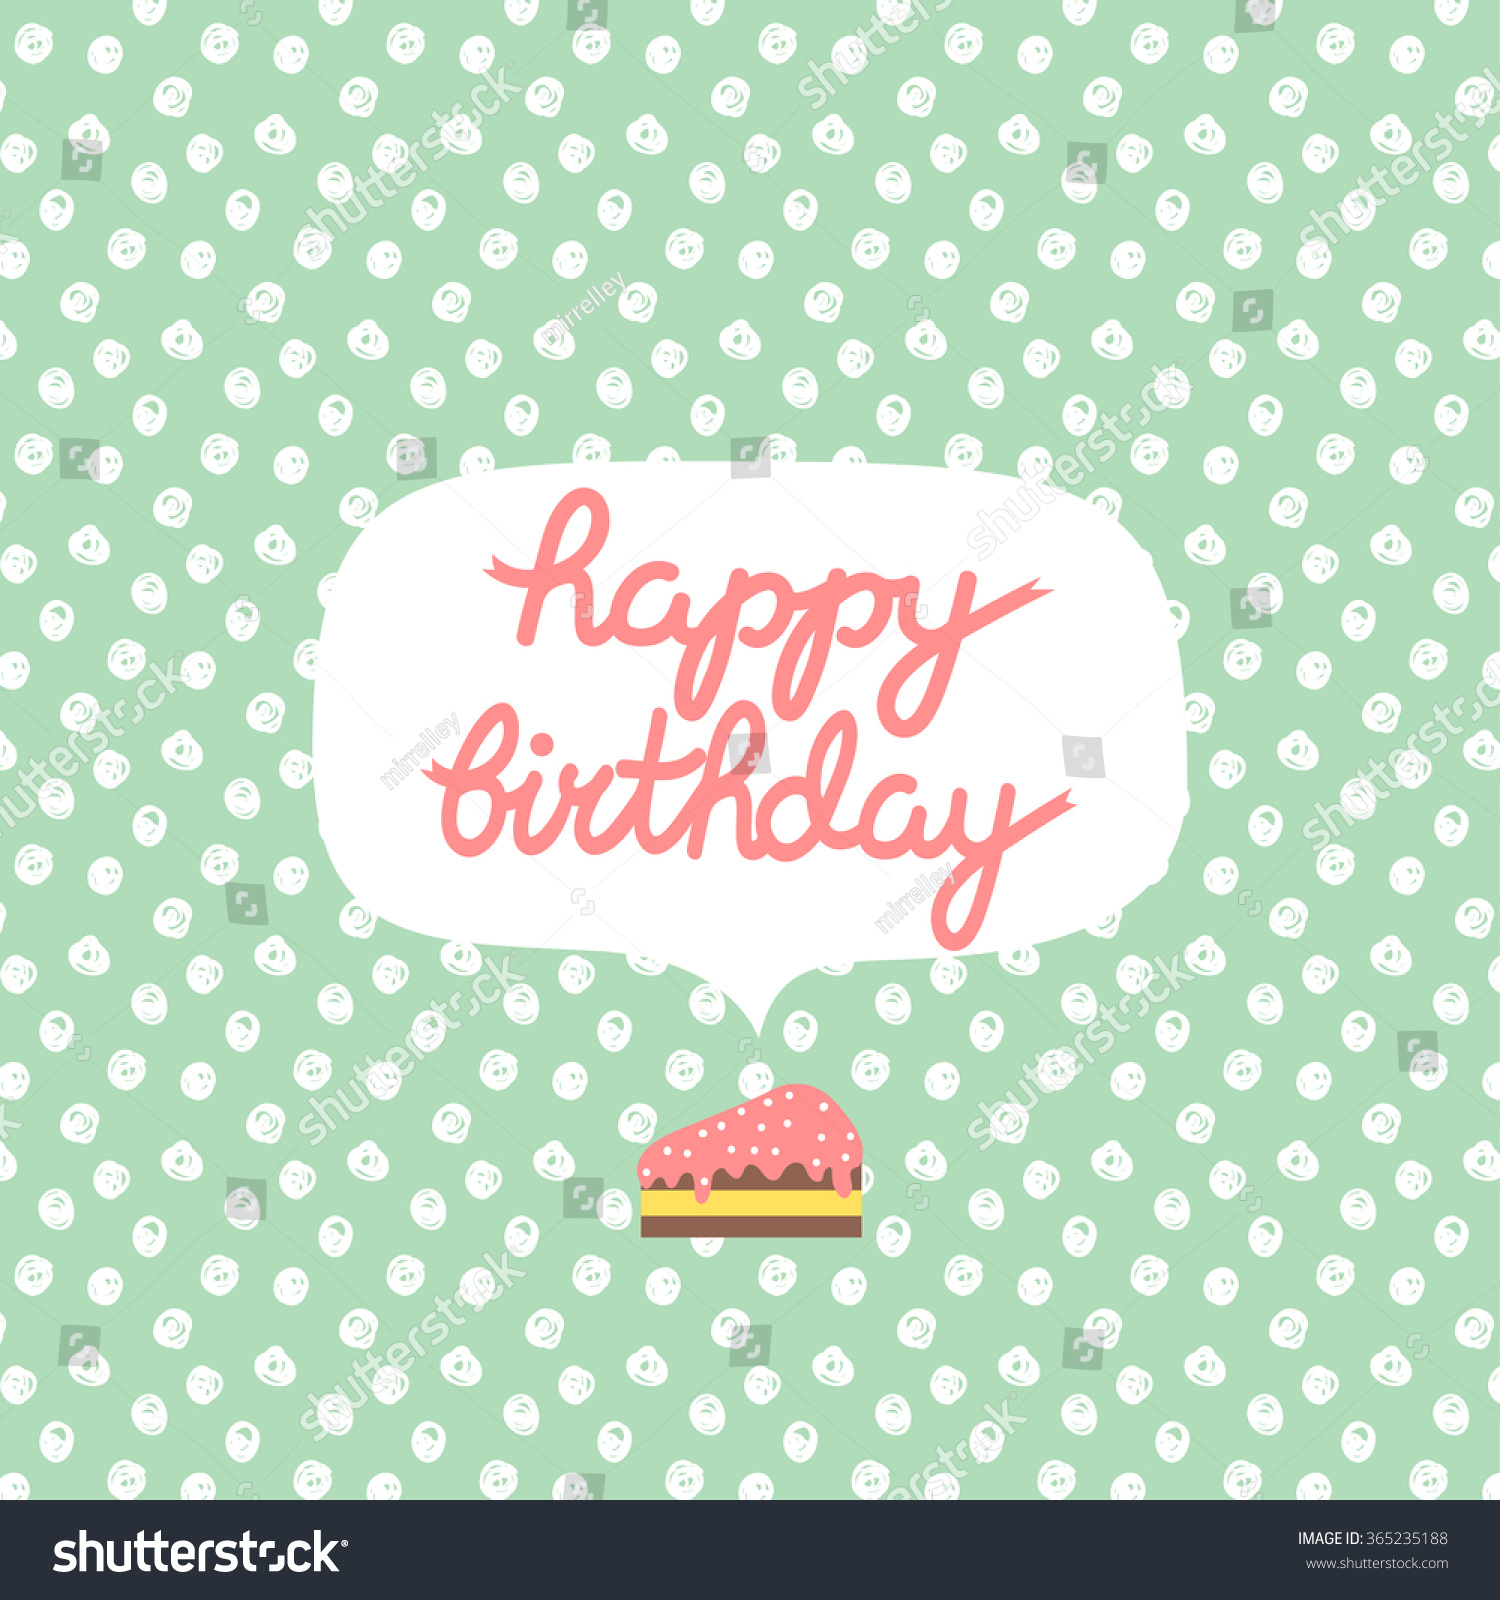 text message birthday cards ; stock-vector-poster-with-happy-birthday-text-message-on-pastel-green-polka-dots-background-with-slice-of-cake-365235188